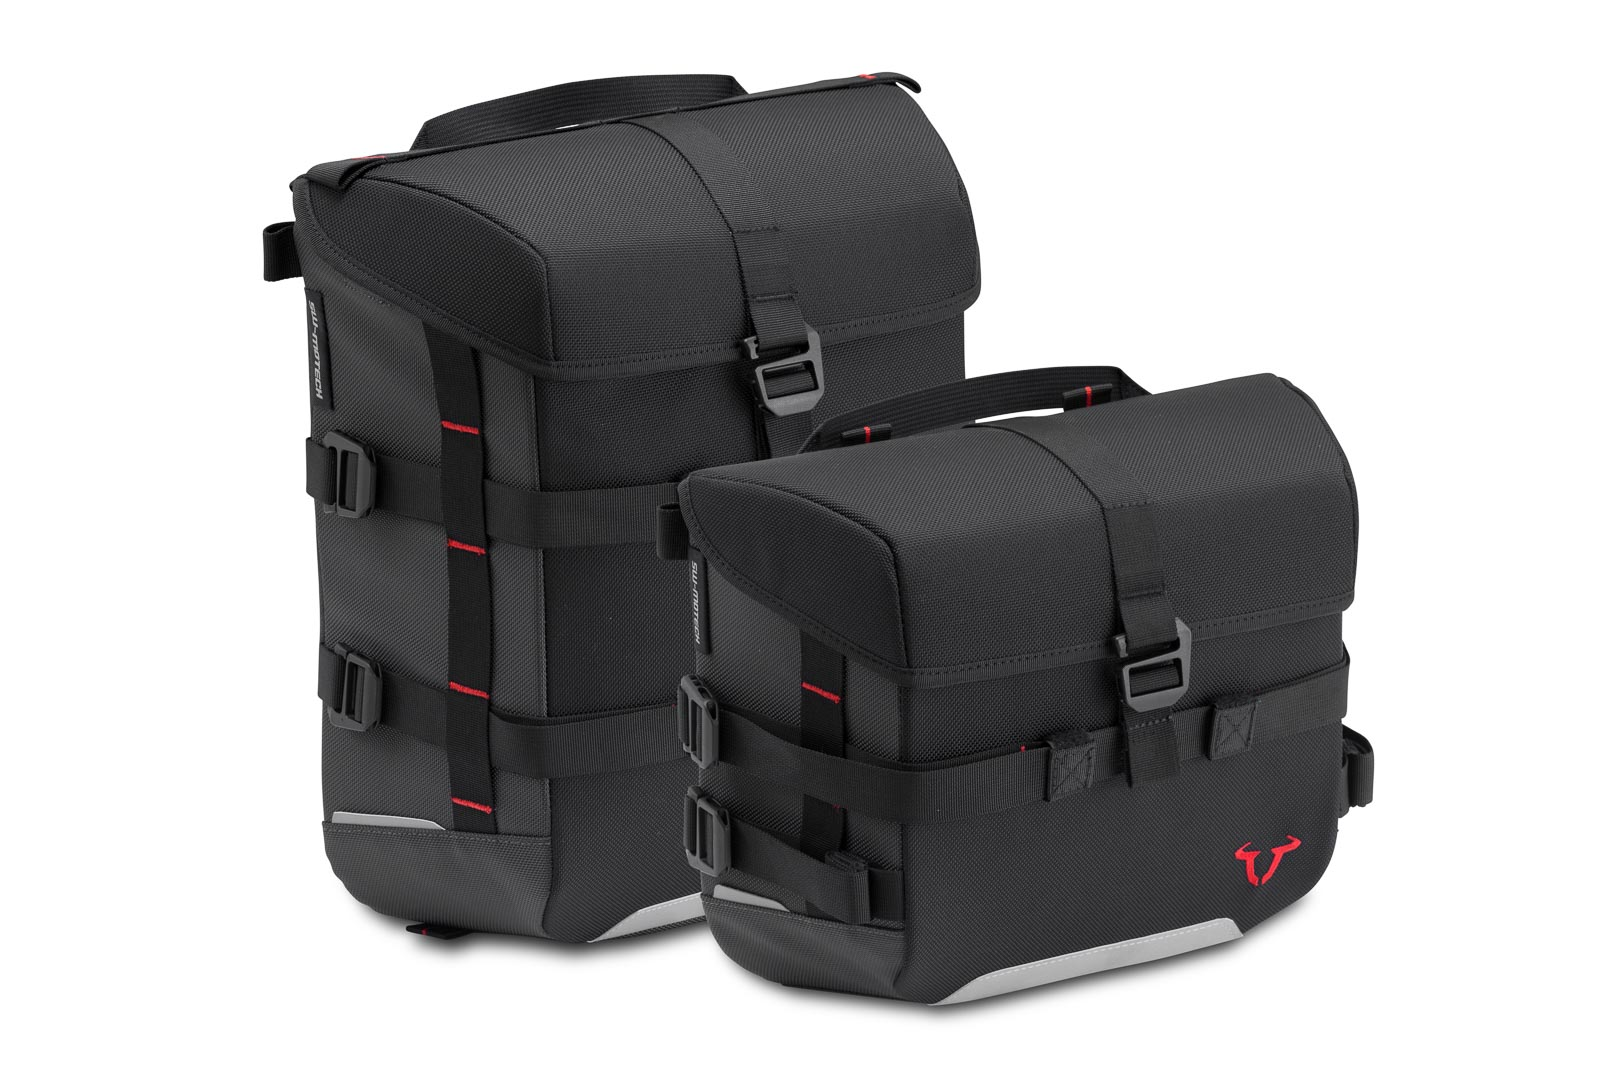 SW-Motech SysBag 15/10 Taschen-System - Ducati Monster 1200 (16-). BC.SYS.22.885.30000/B